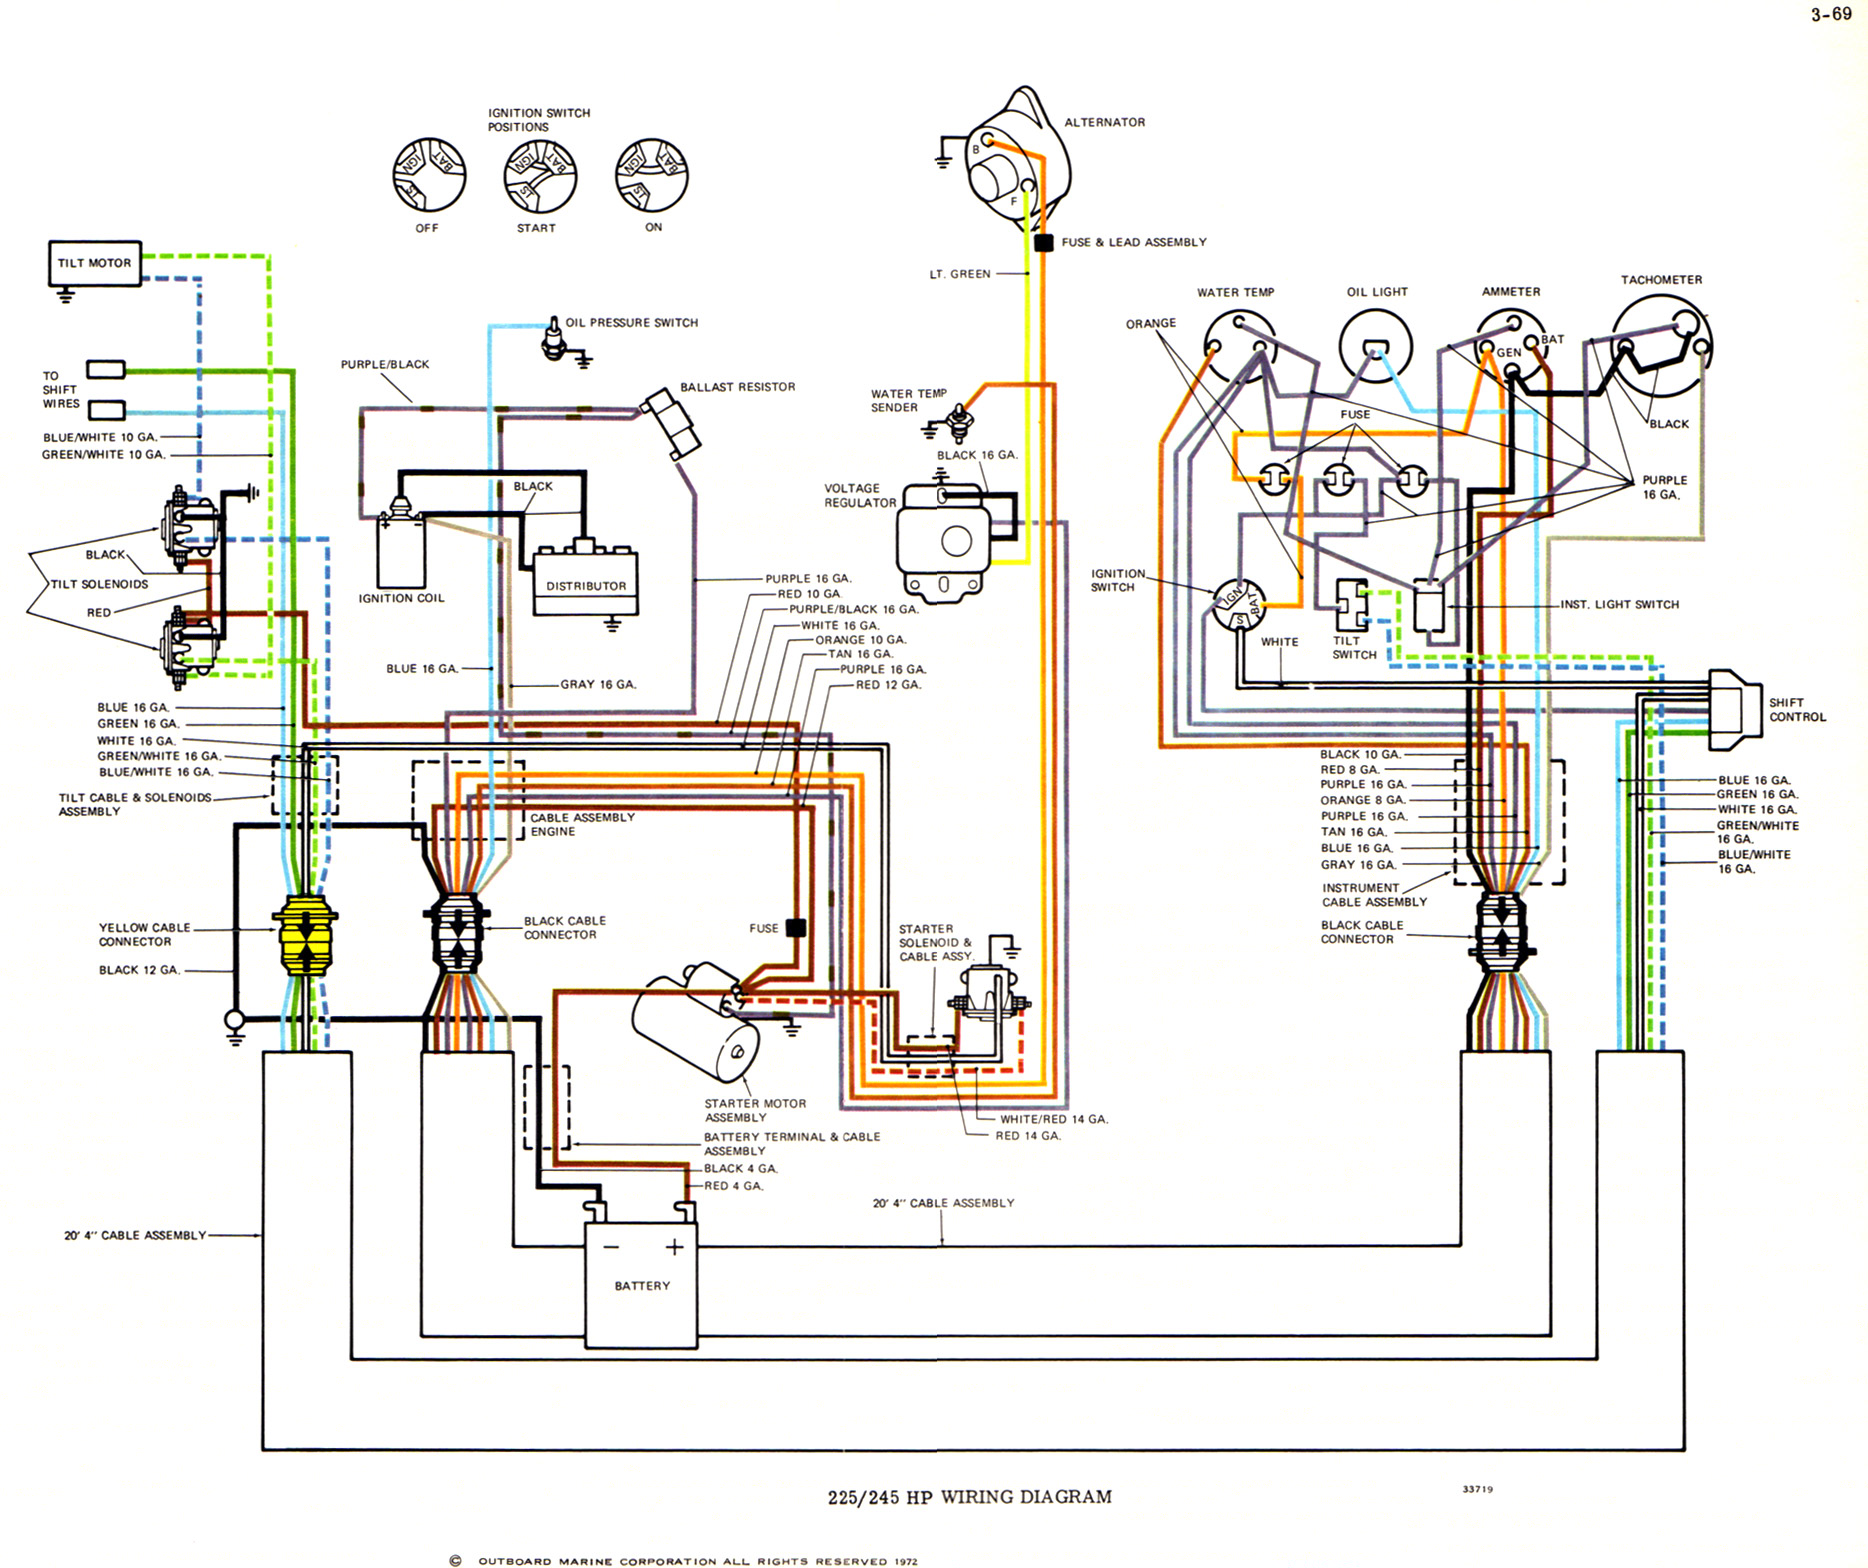 40 hp johnson wiring harness diagram free picture wiring diagram40 hp johnson wiring harness diagram free picture